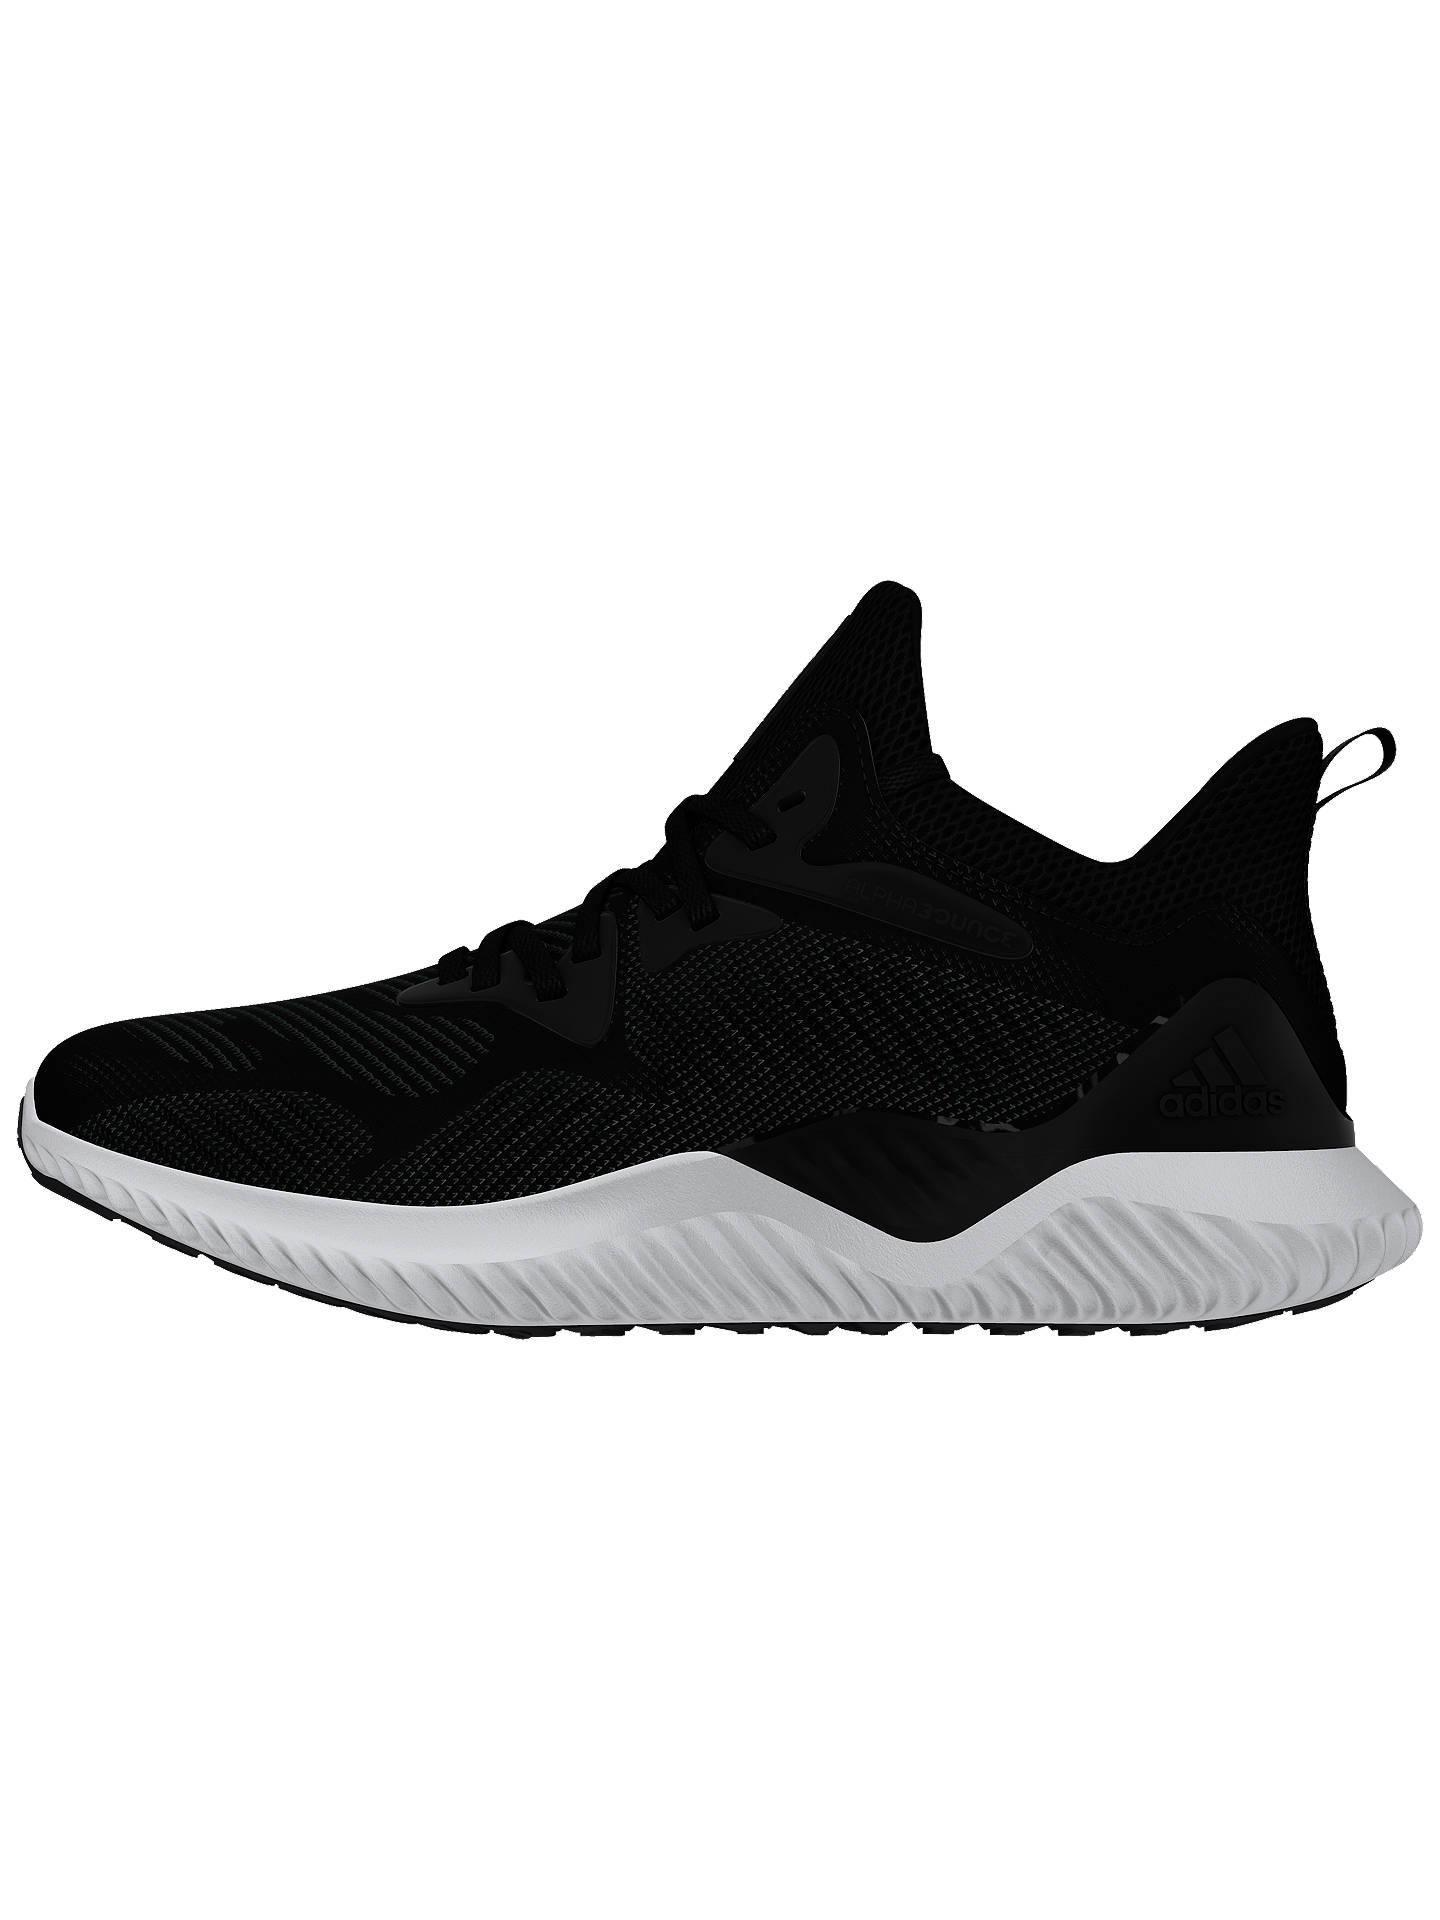 adidas Alphabounce Beyond Women s Running Shoes at John Lewis   Partners 73b8f678b